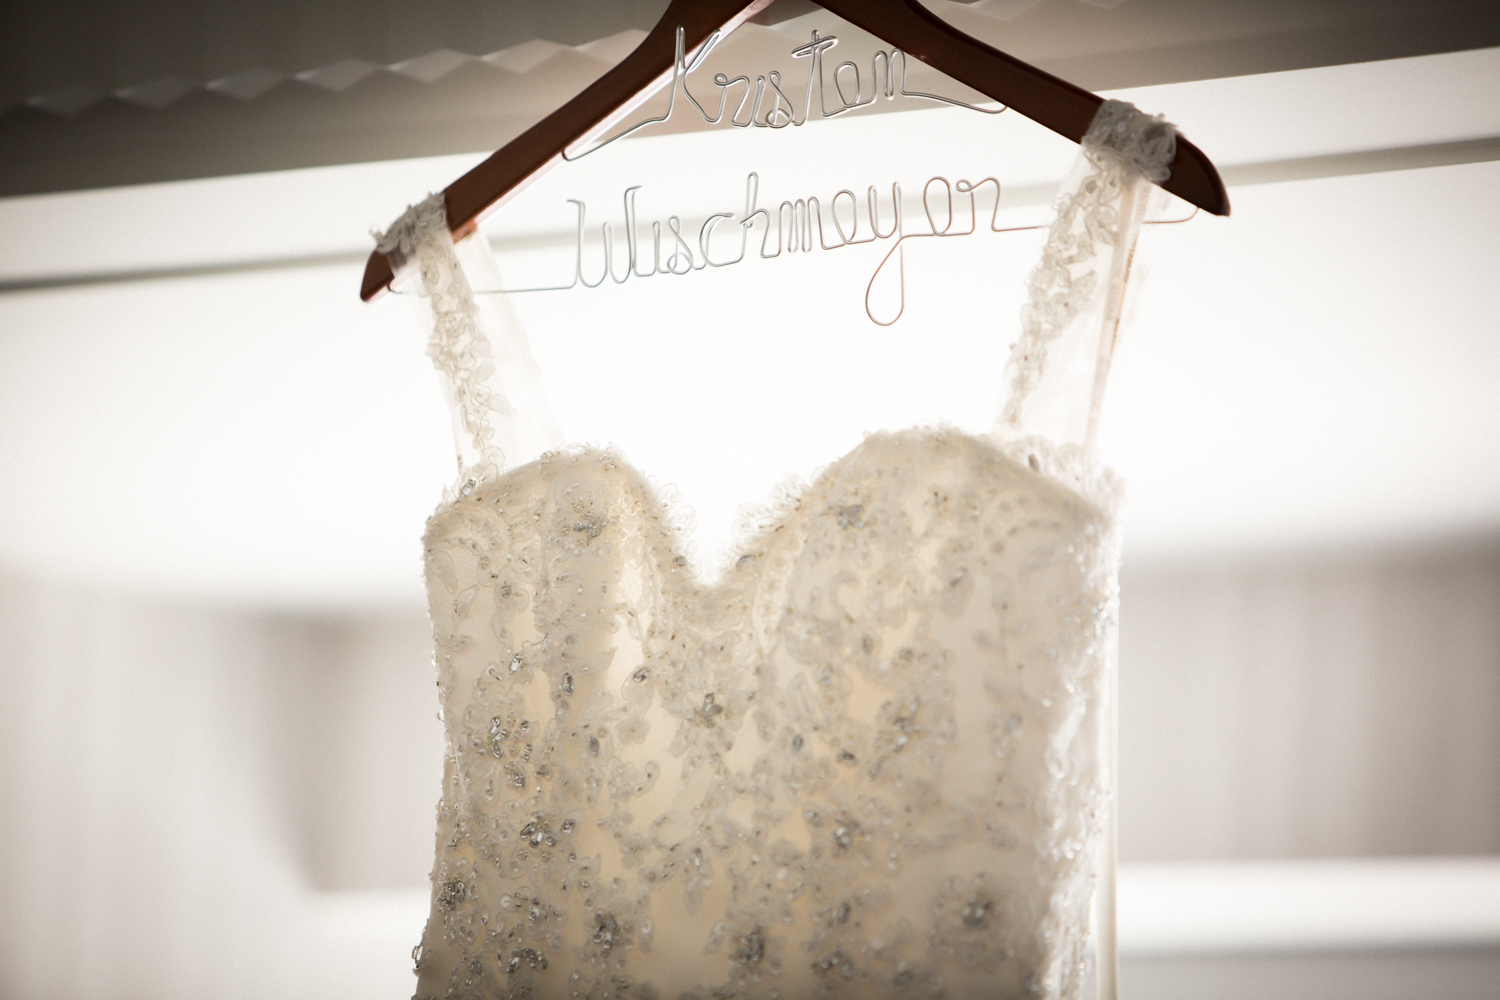 Wedding dress with custom name hanger